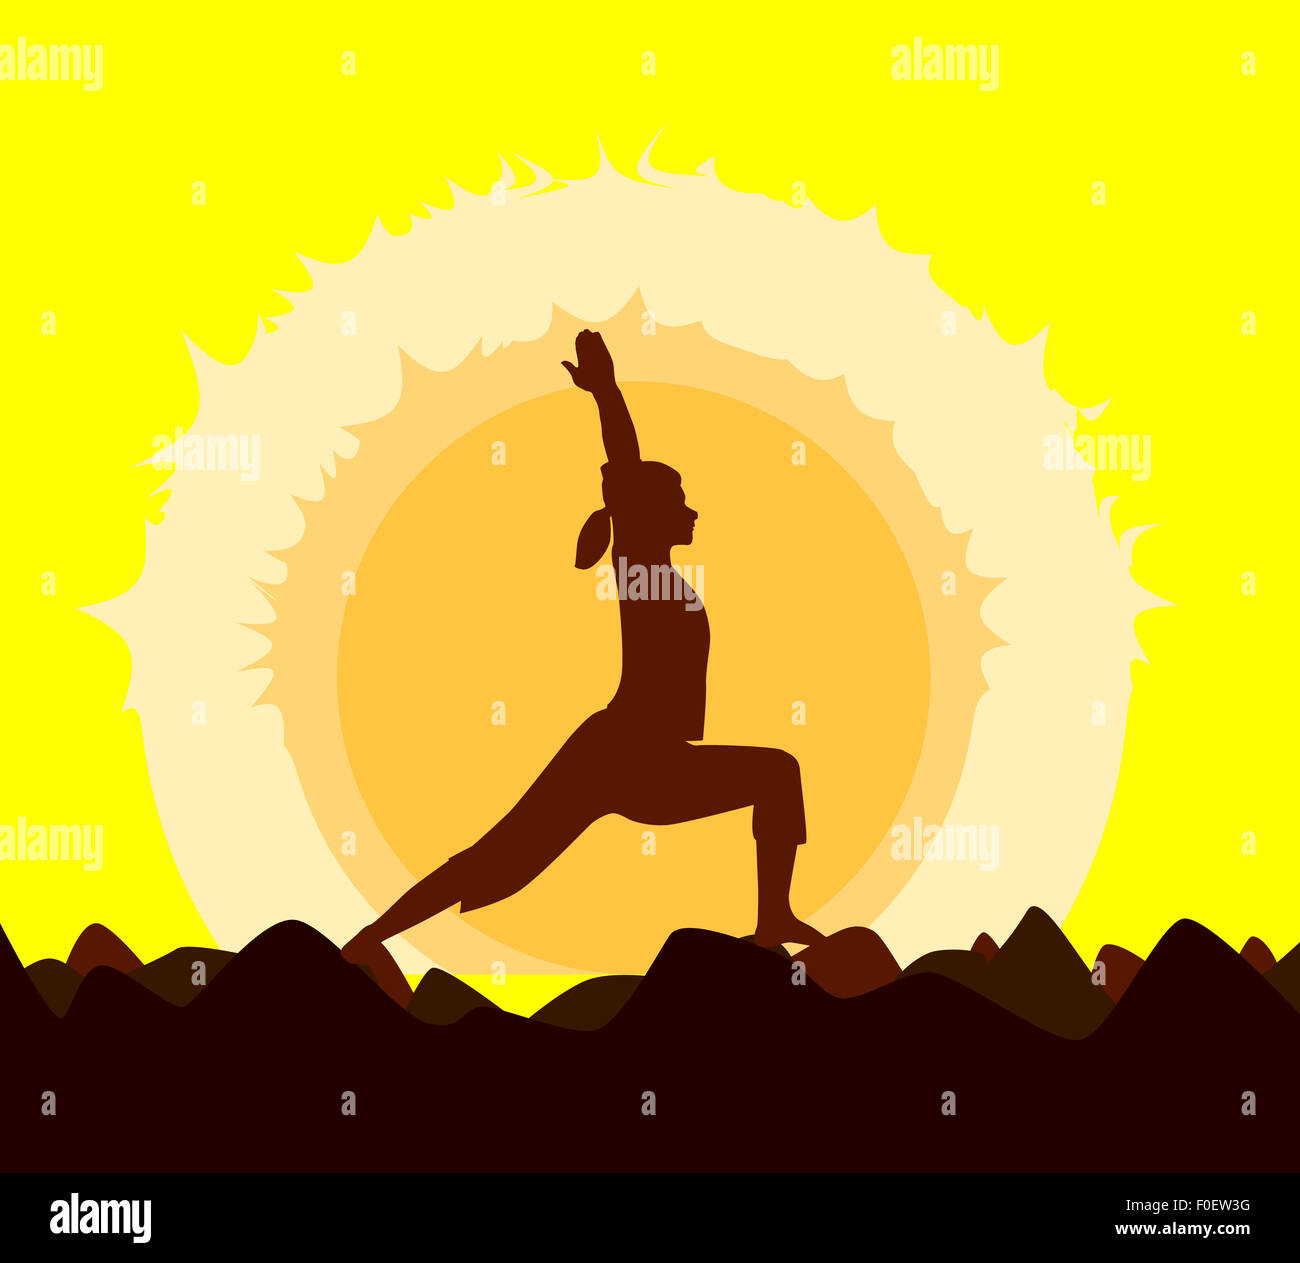 Yoga Poses Performed By A Young Woman In Silhouette Set Against Yellow Sunset